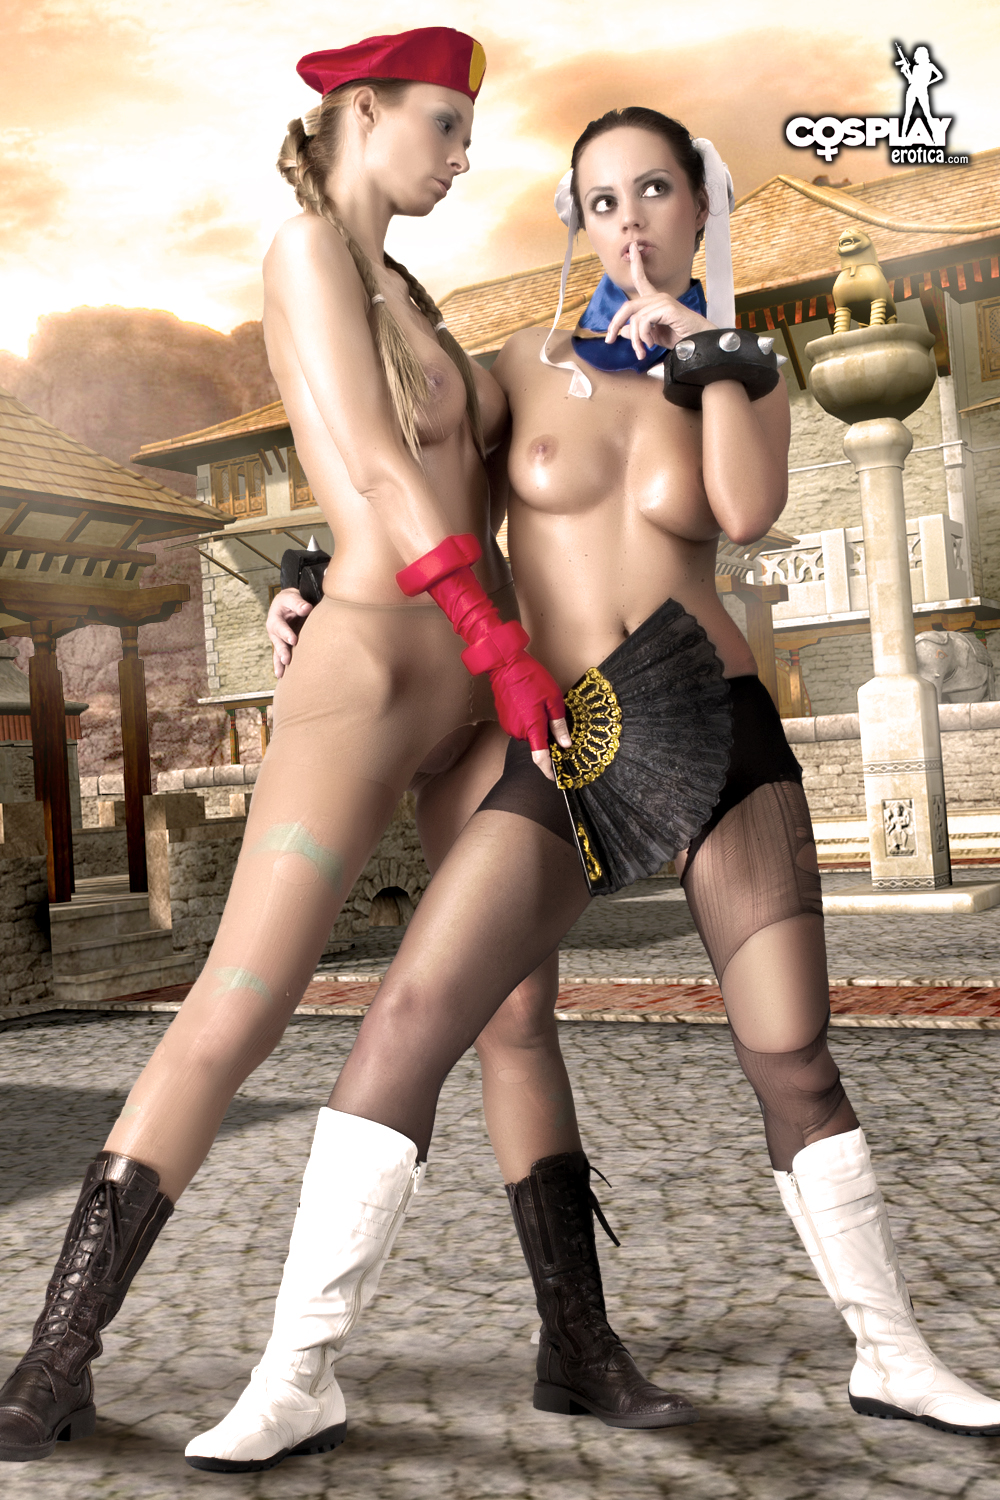 Cosplay erotic nudes streetfighter hentai pictures